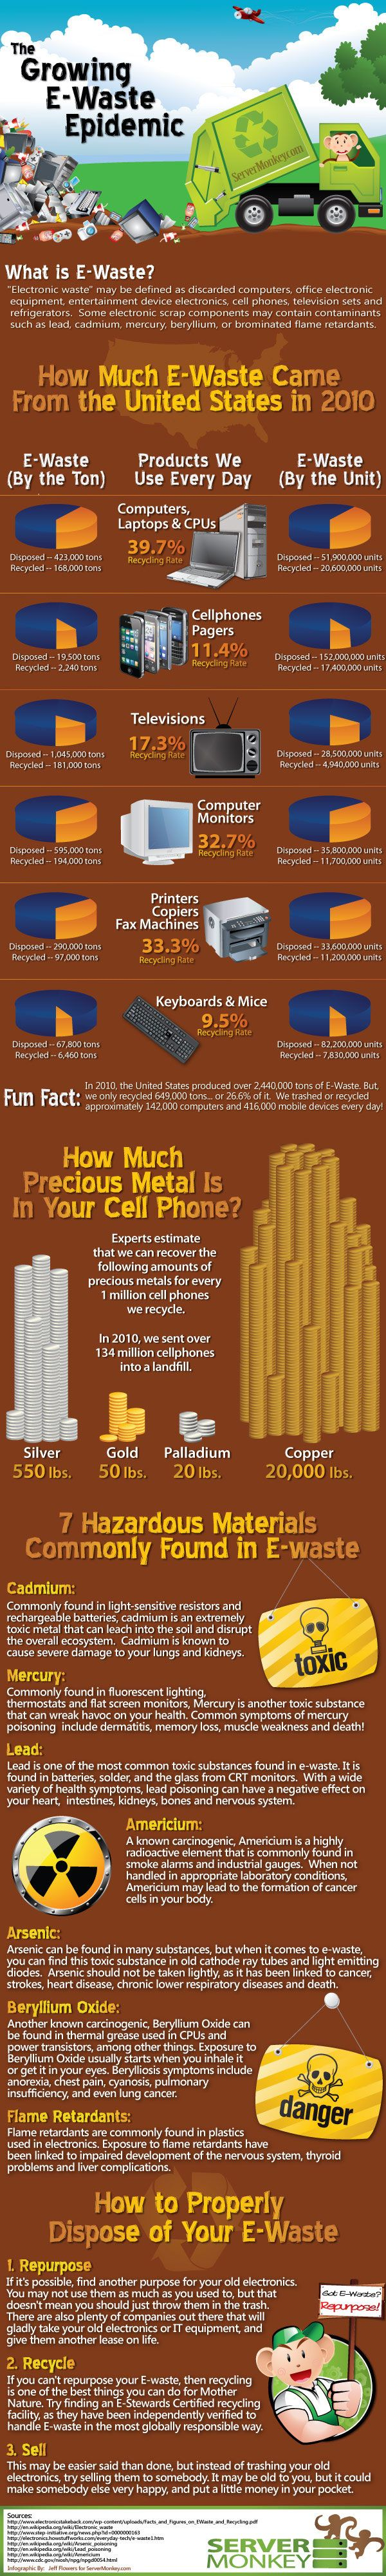 Growing E-Waste Epidemic (Infographic)